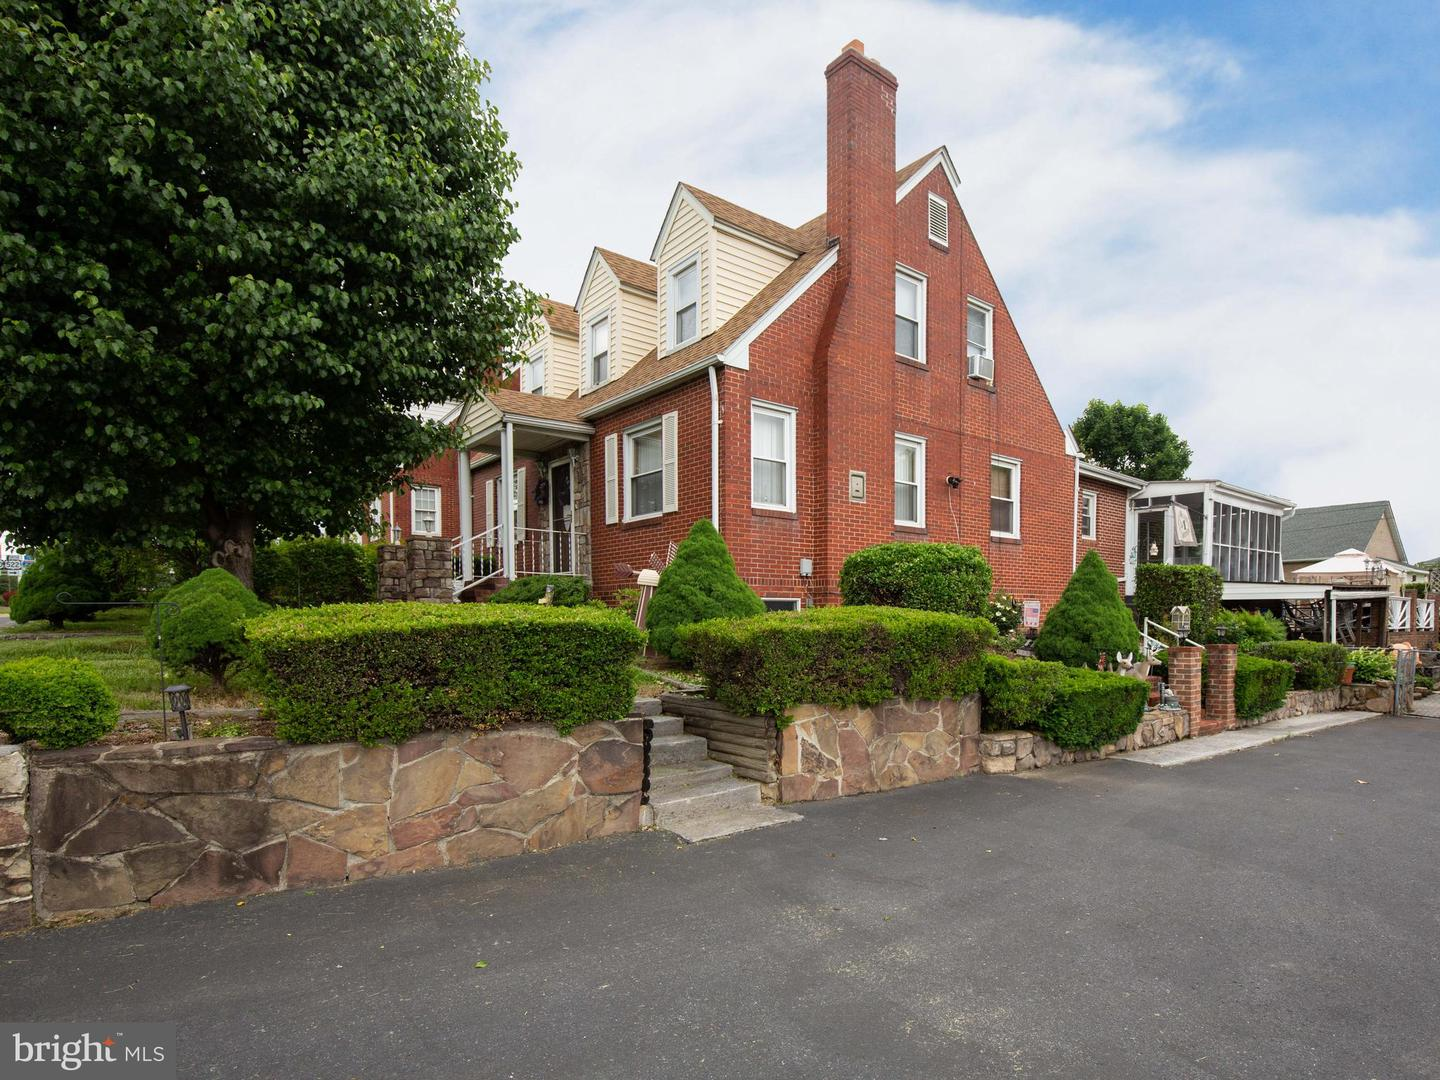 Additional photo for property listing at 137 W 14th St Front Royal, Virginia 22630 United States